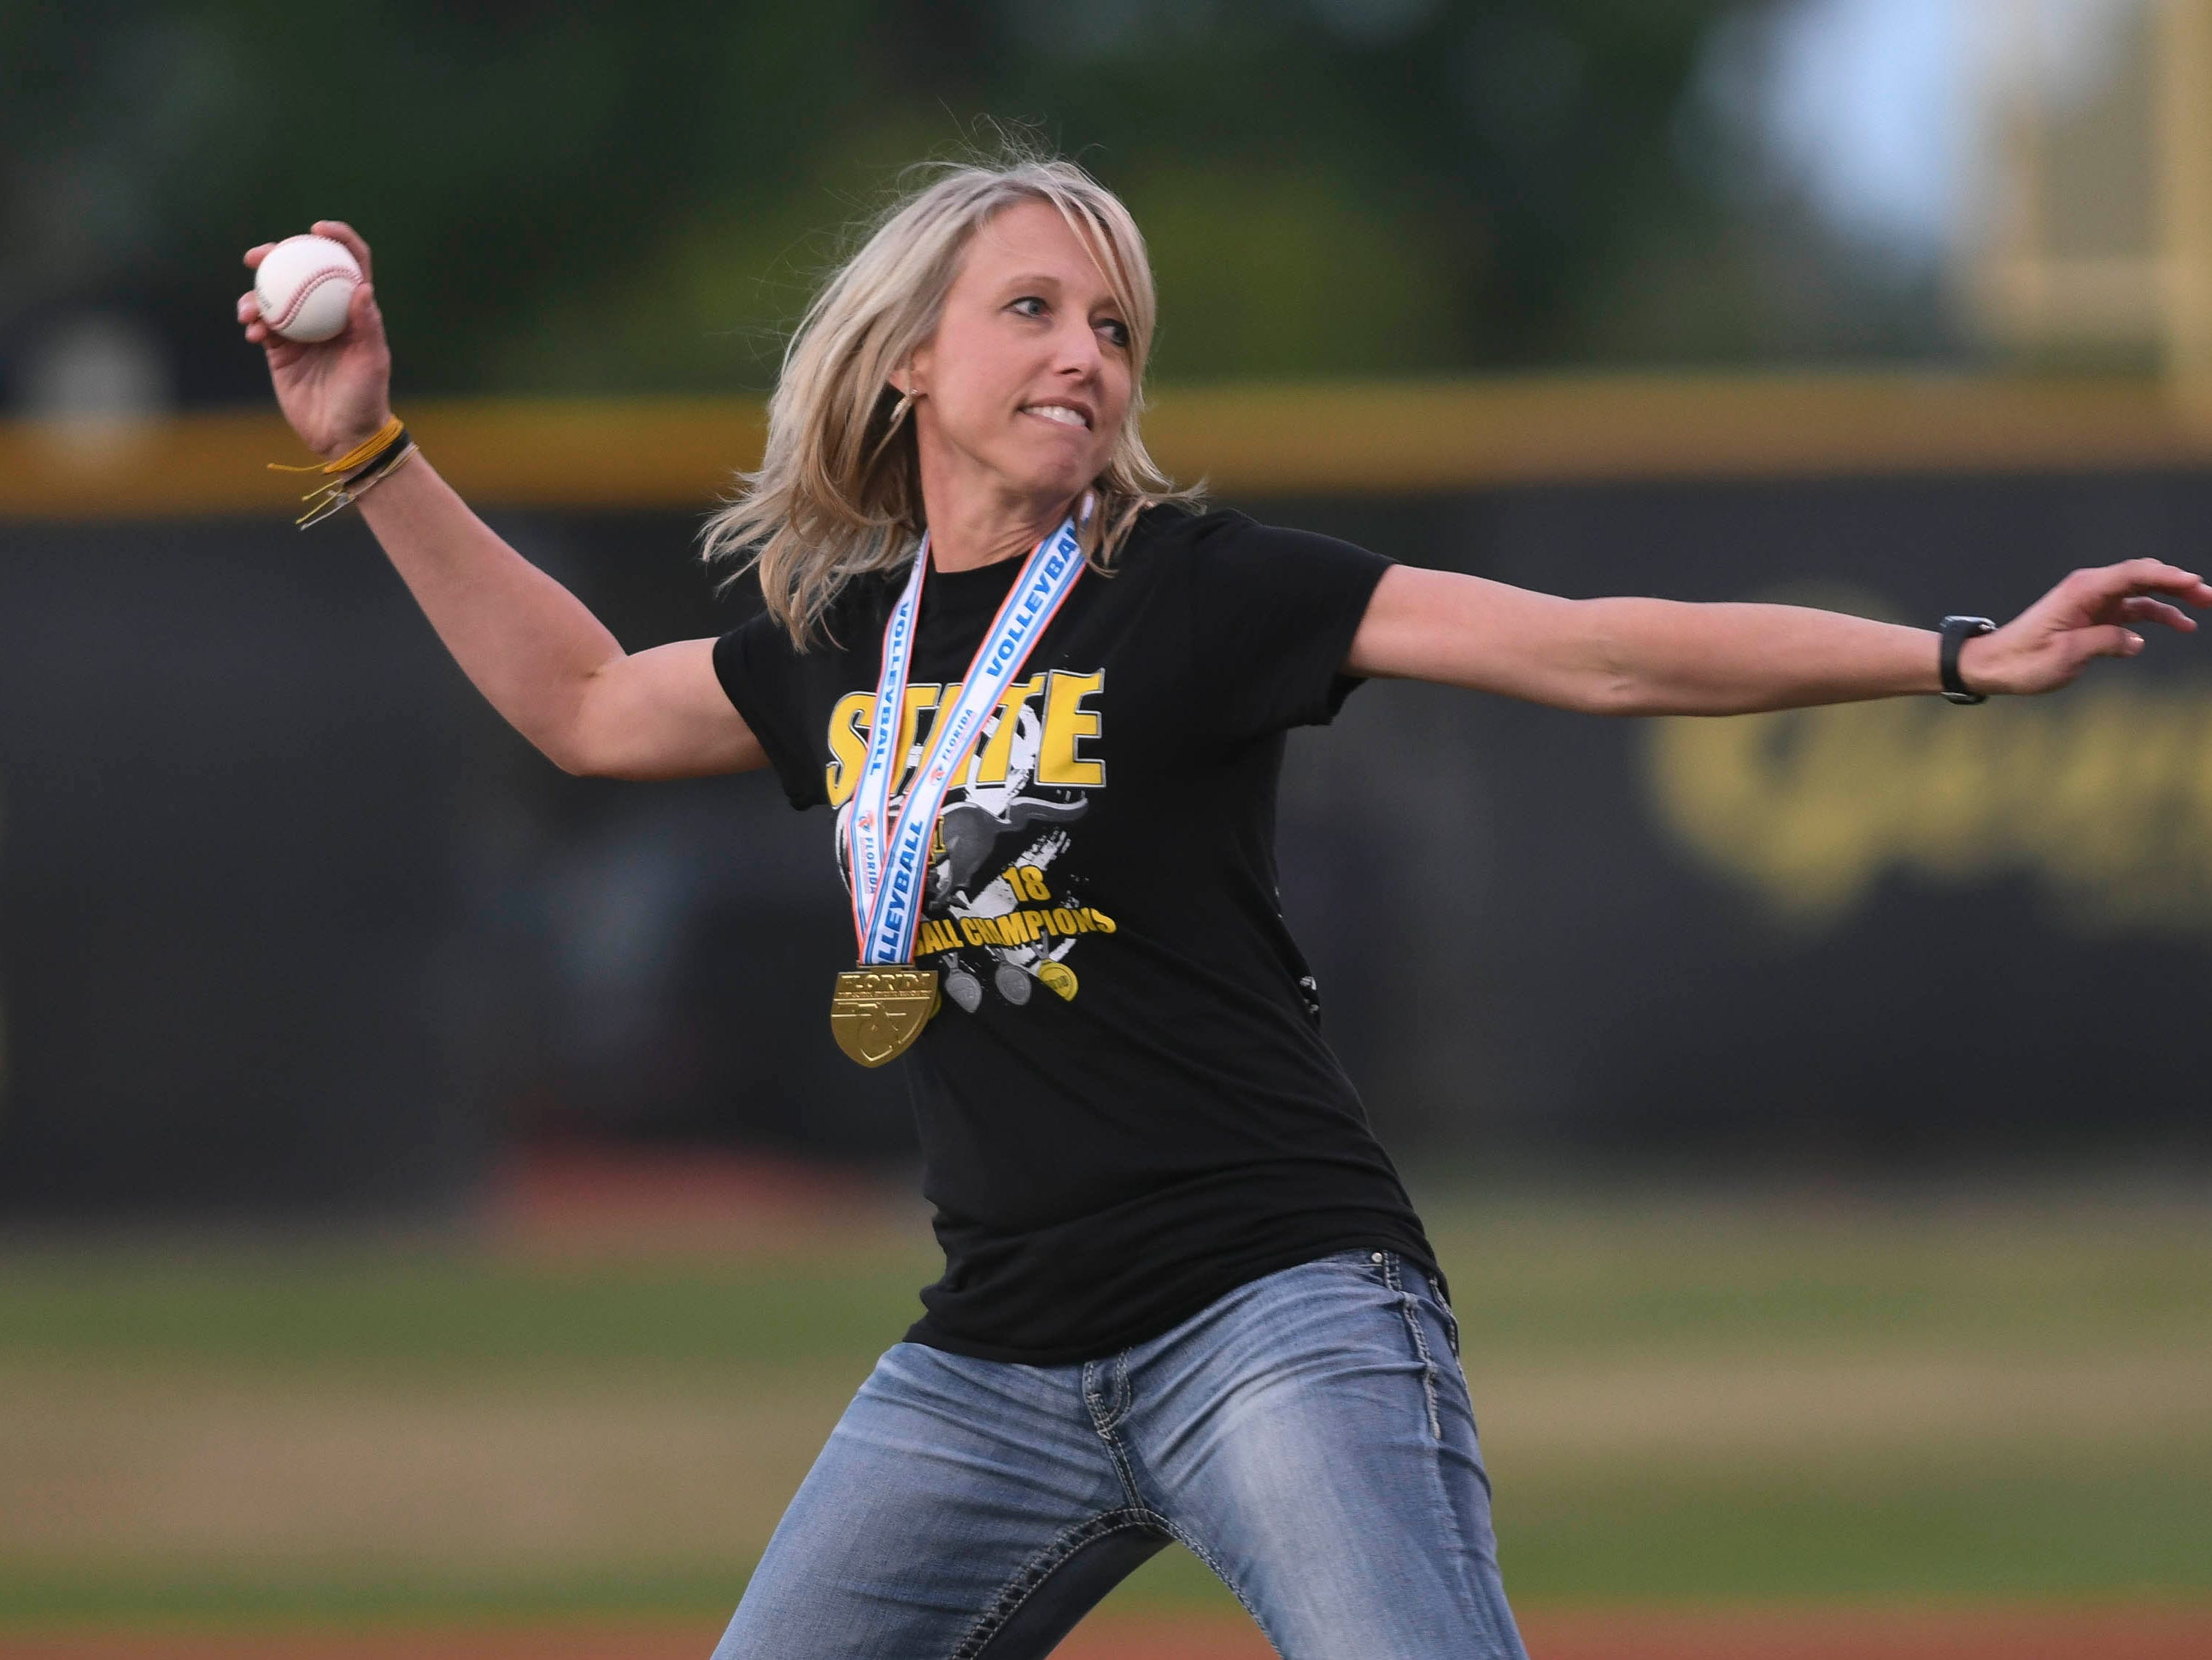 Merritt Island volleyball head coach Angie Patrick throws out the first pitch before Tuesday's baseball game against Eau Gallie. The Mustang volleyball team was presented with their State Championship rings prior to the game.